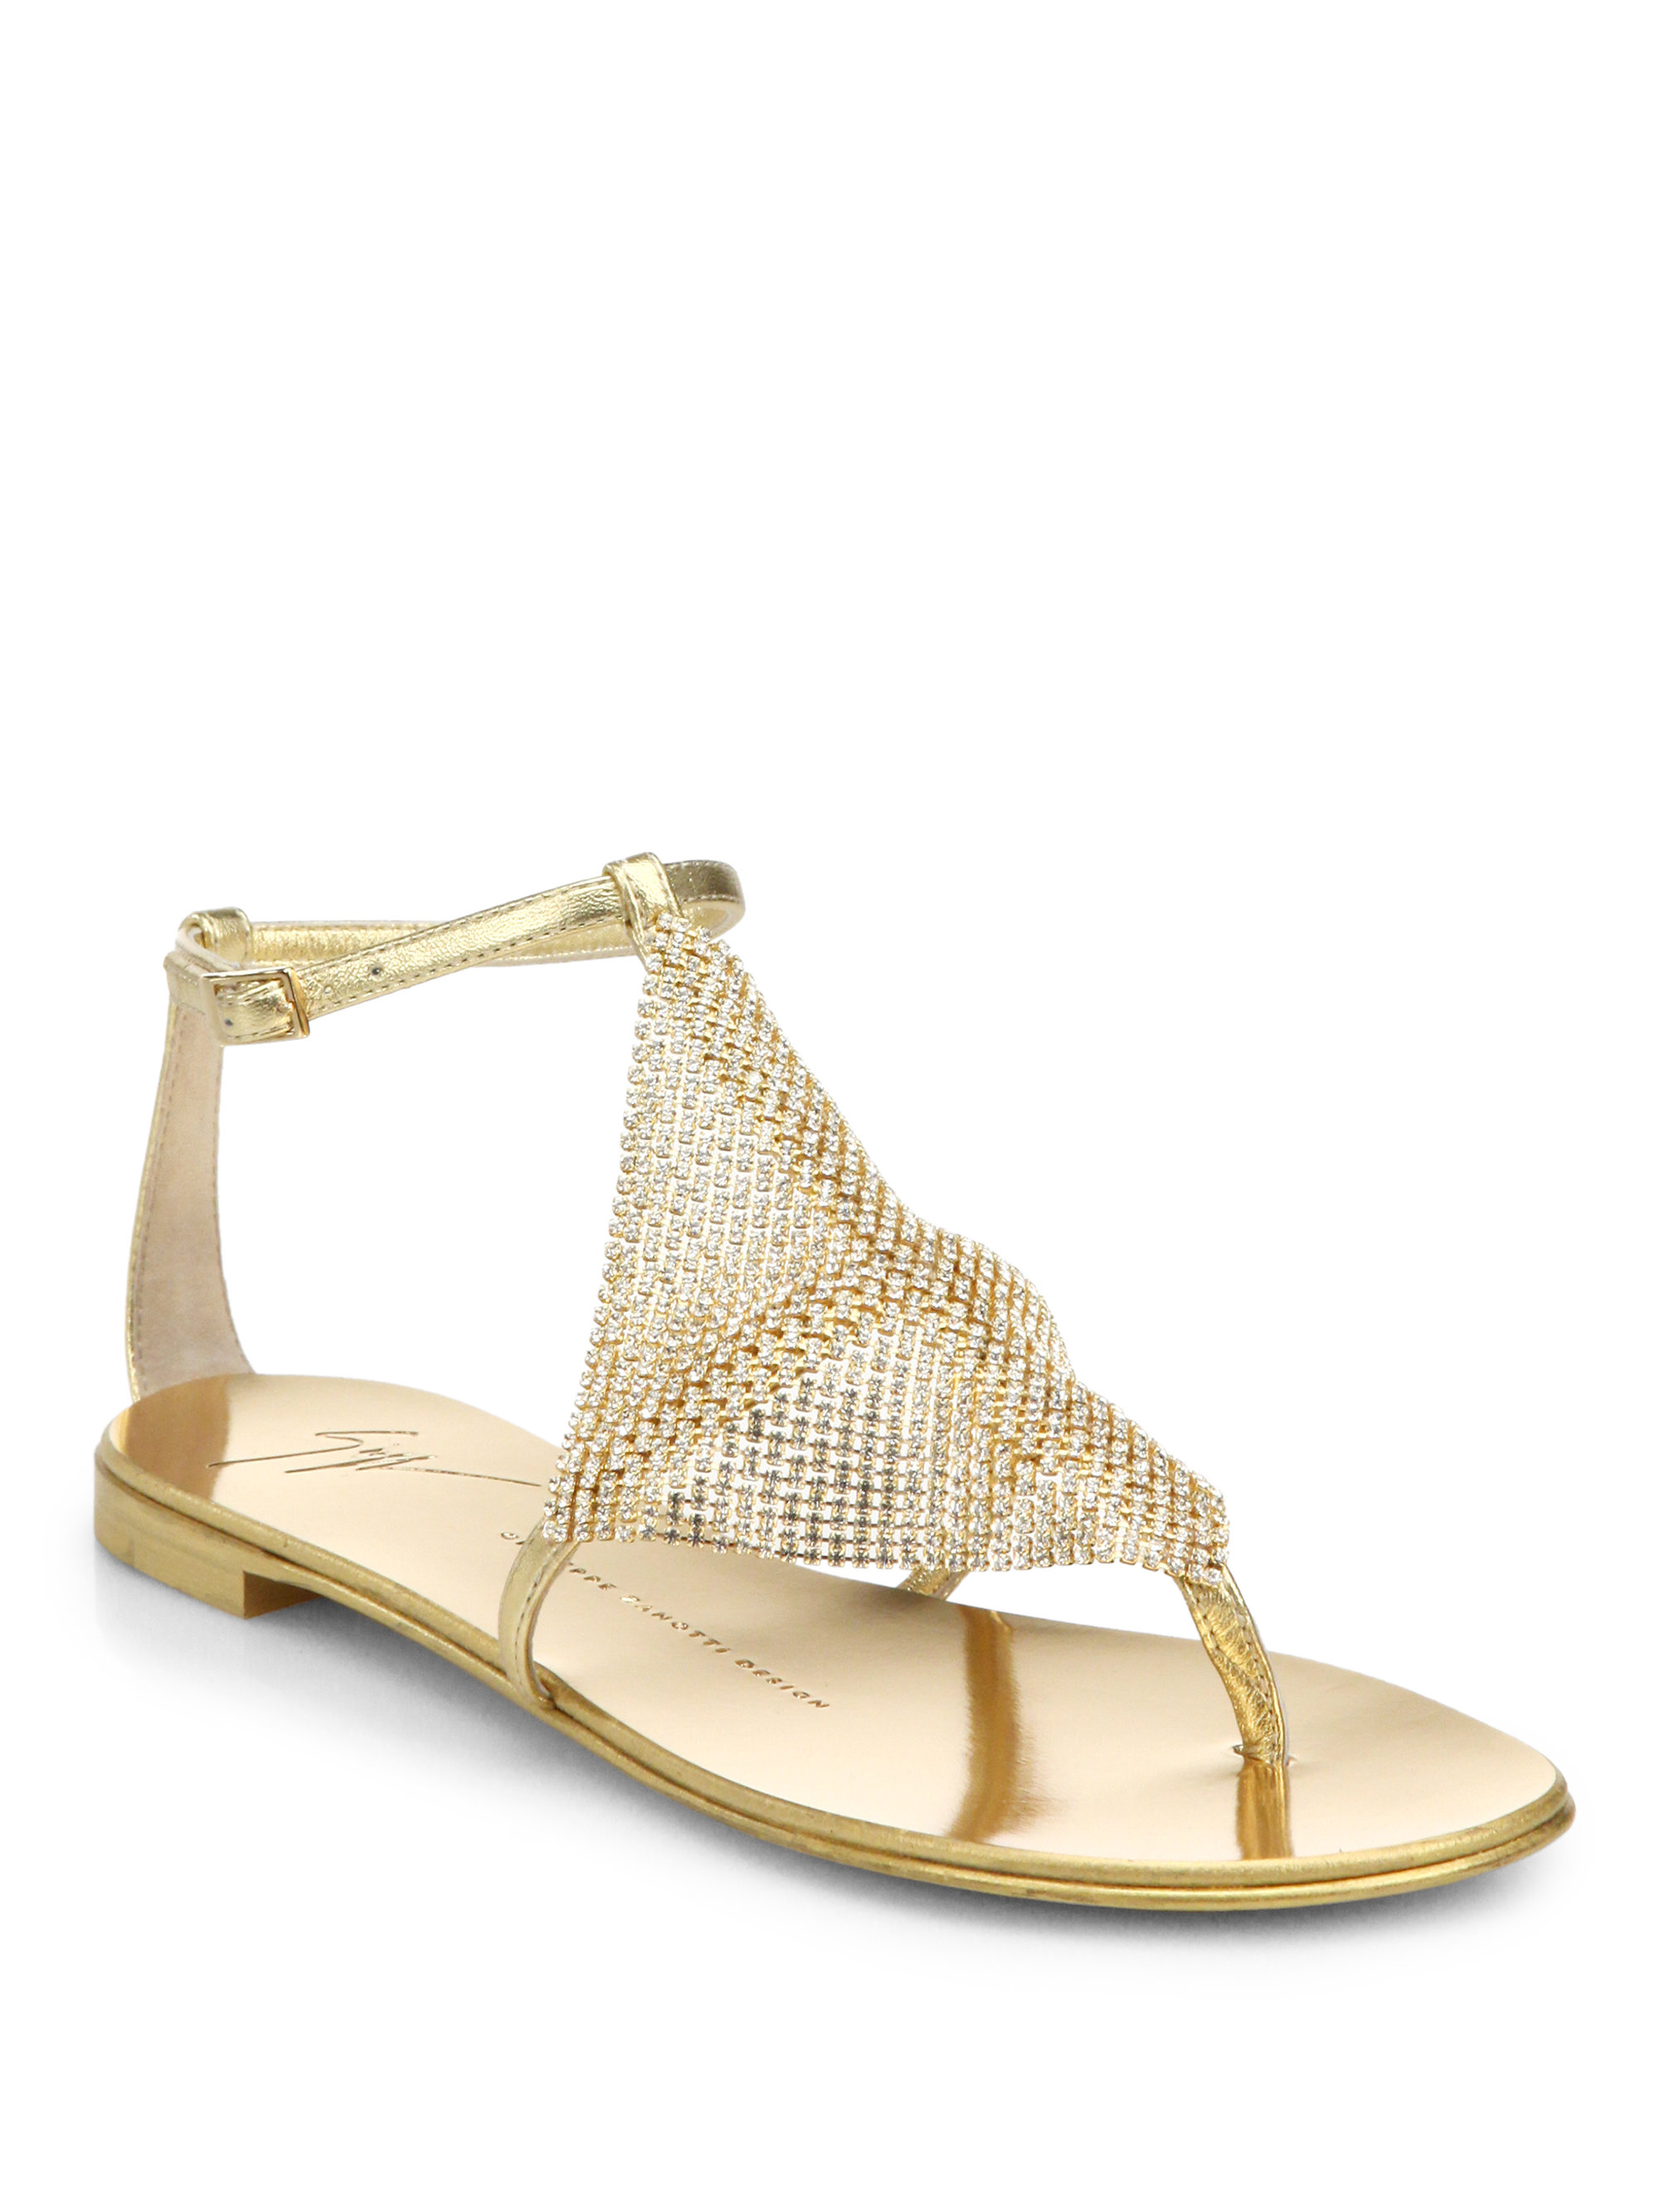 Model Giuseppe Zanotti Leather And Neon Sandals For Women  Women39s Shoes